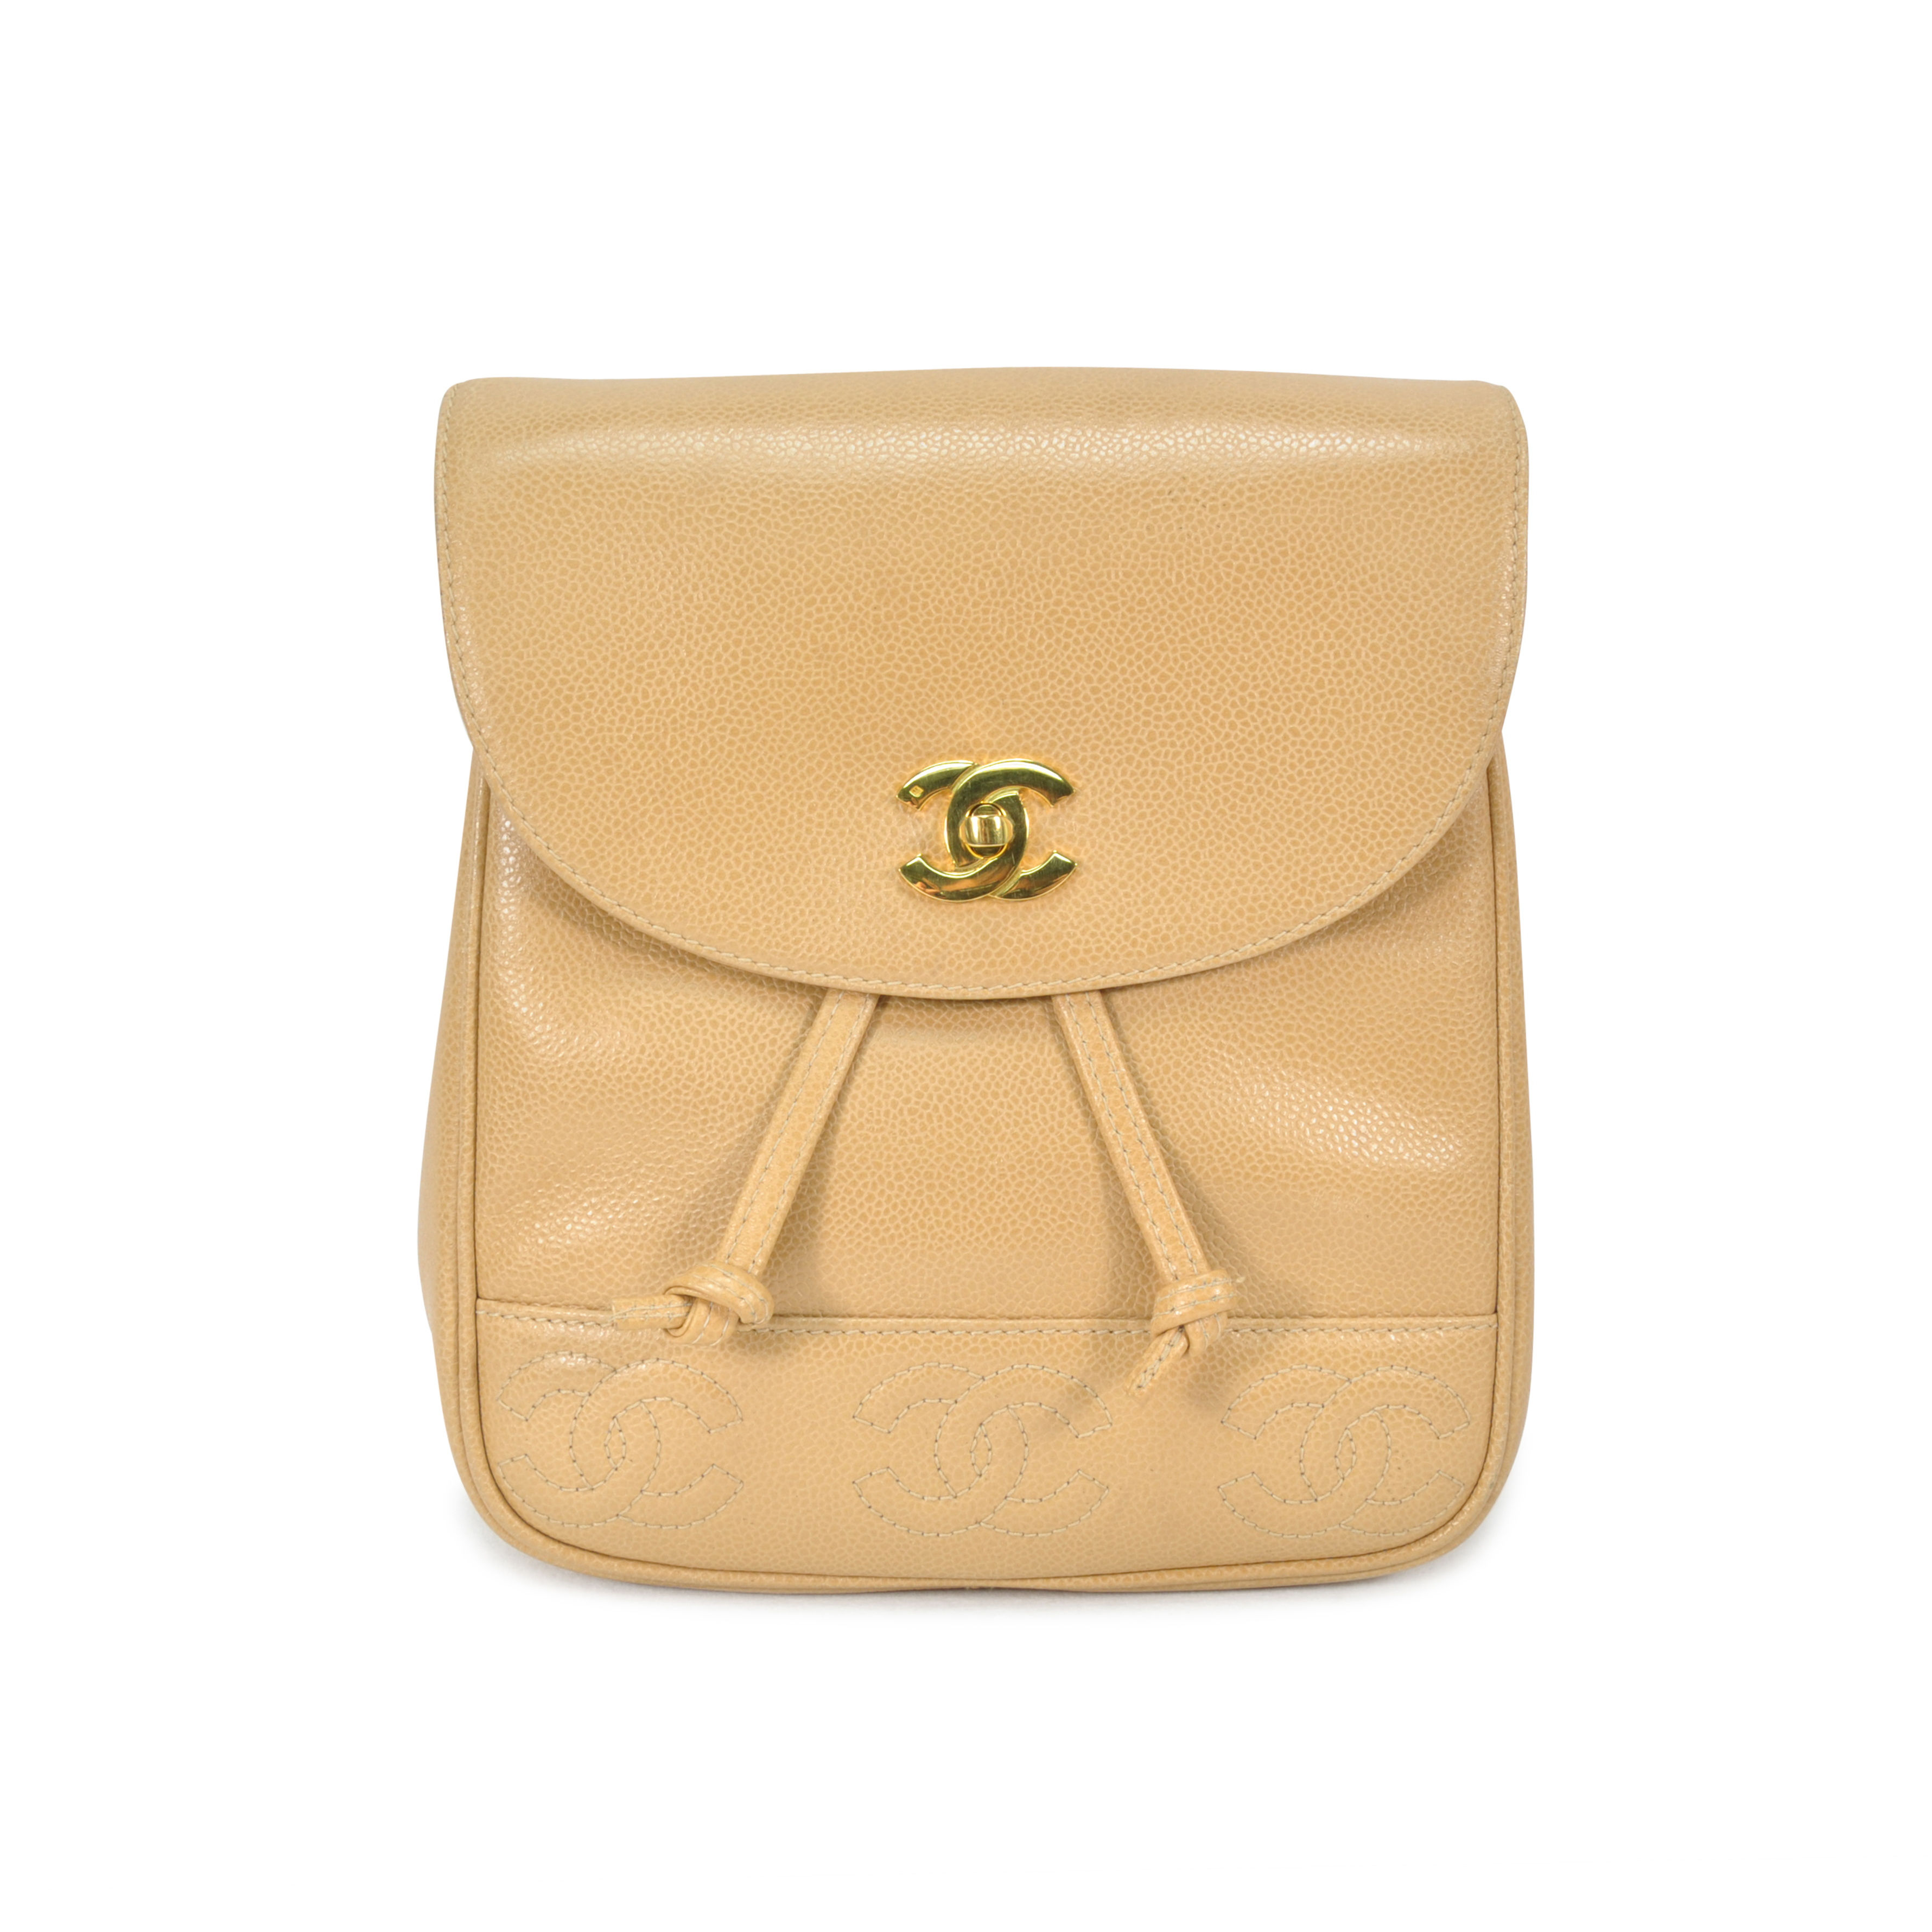 69ef627b8f8d Authentic Vintage Chanel Stitched 'CC' Caviar Backpack (TFC-107-00020)    THE FIFTH COLLECTION